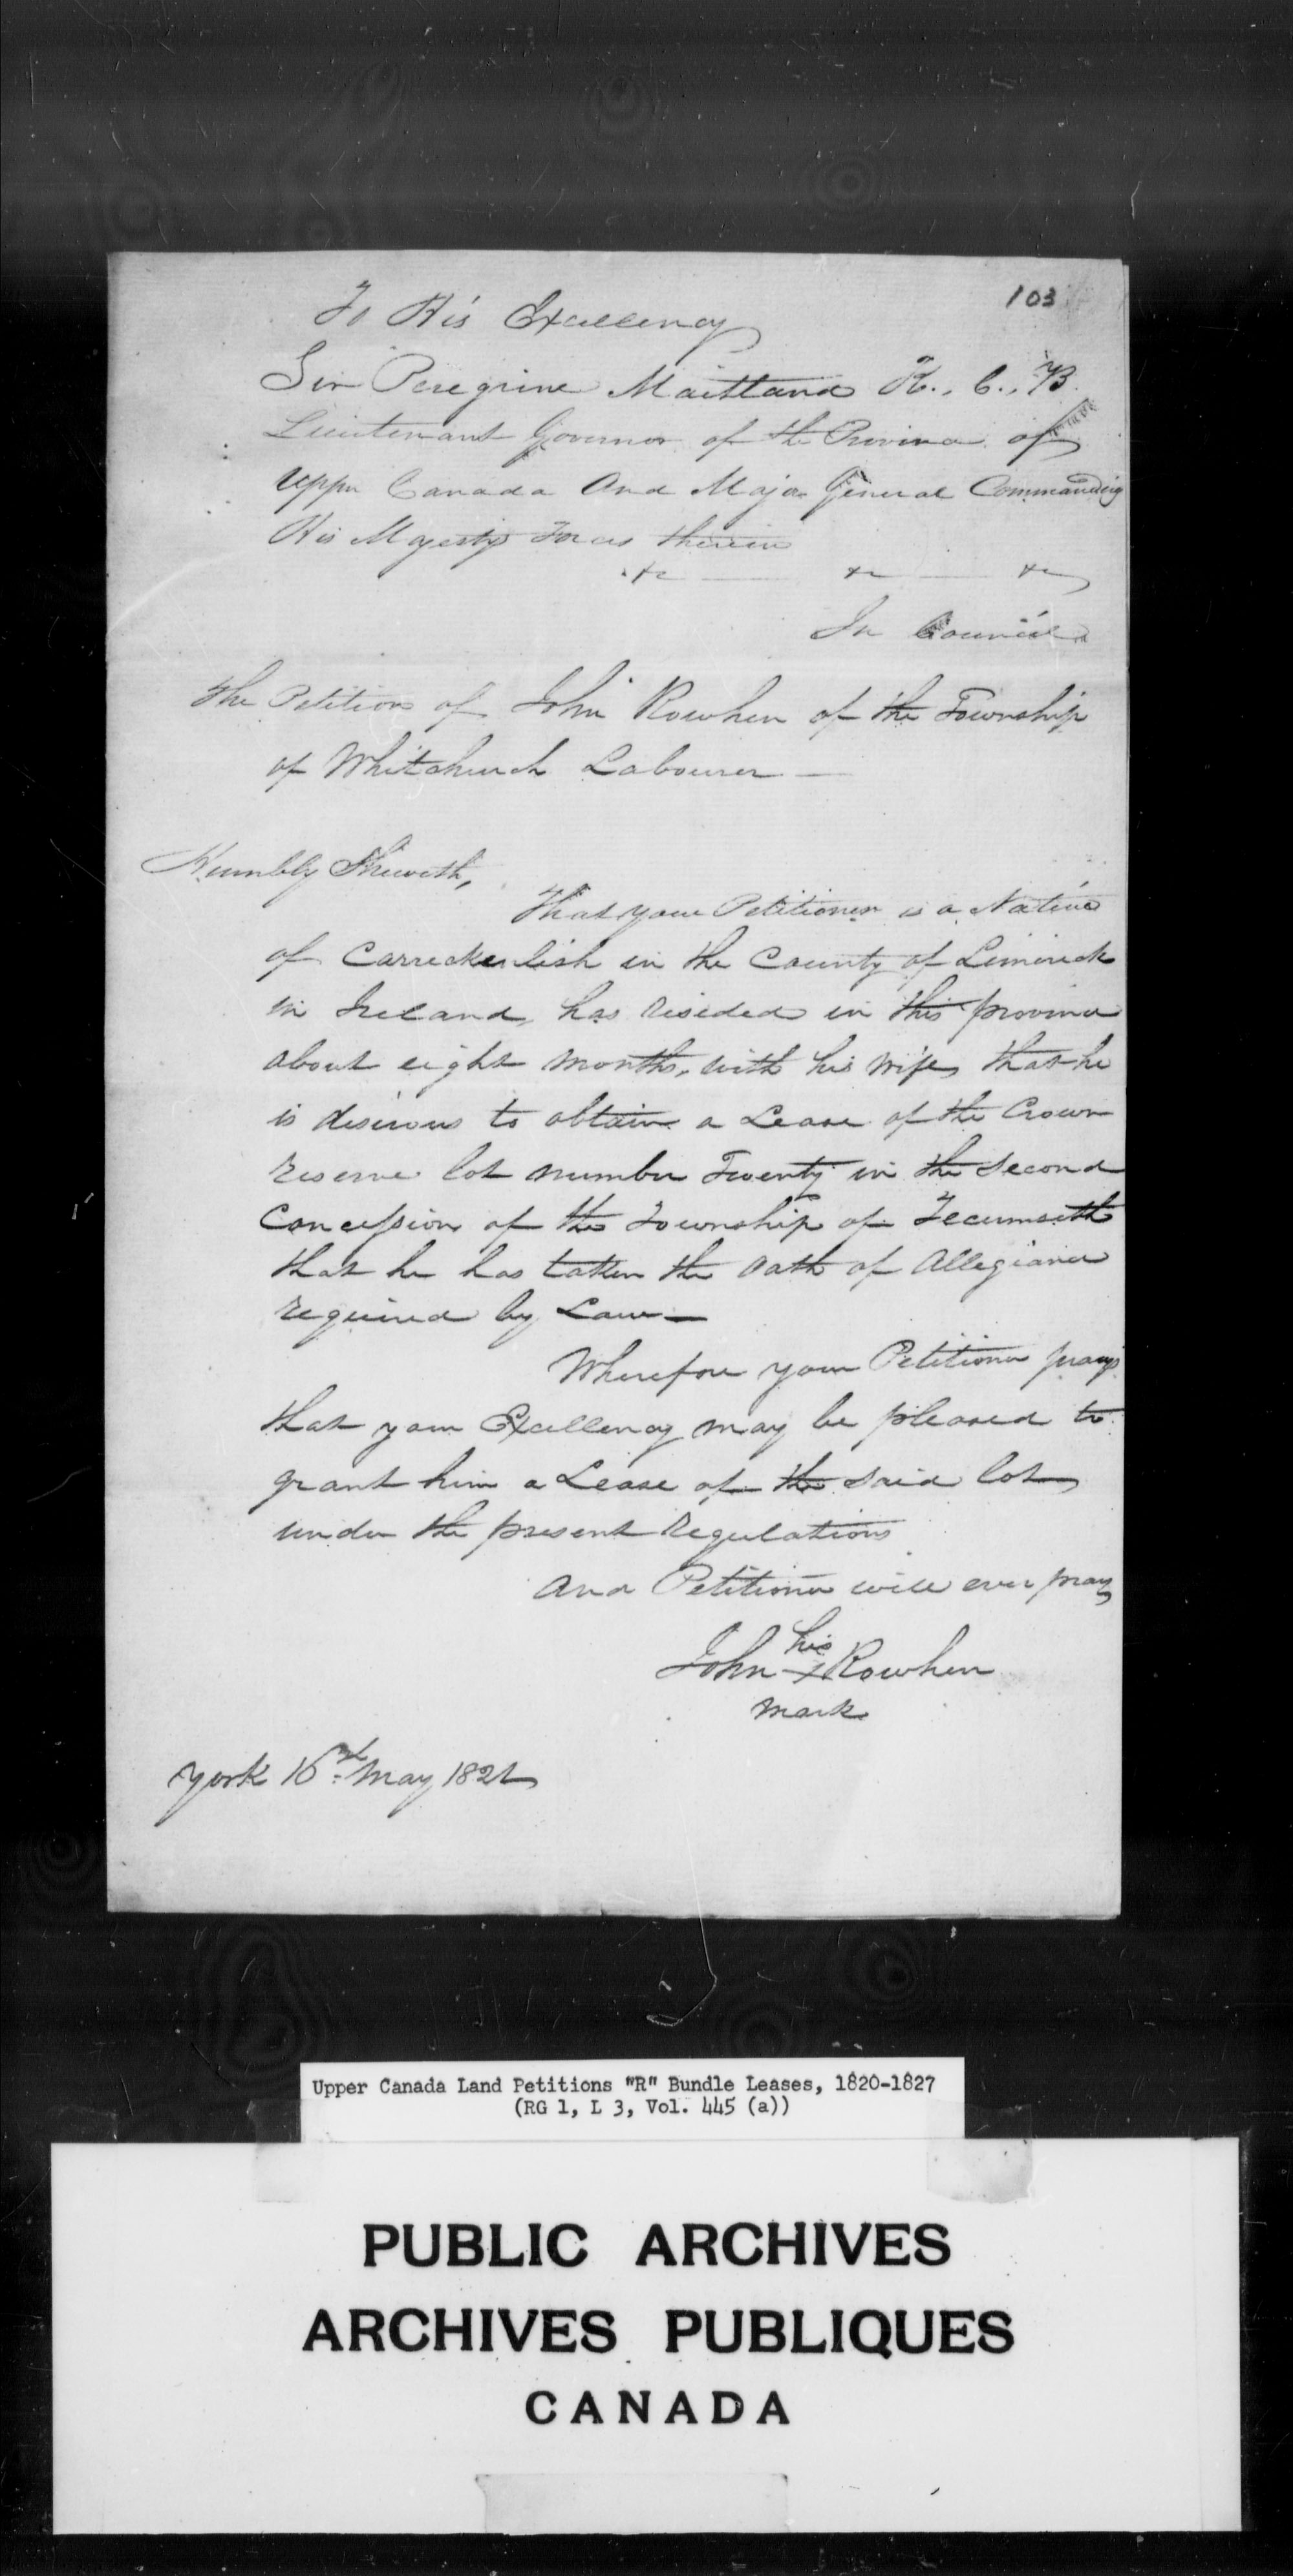 Title: Upper Canada Land Petitions (1763-1865) - Mikan Number: 205131 - Microform: c-2803